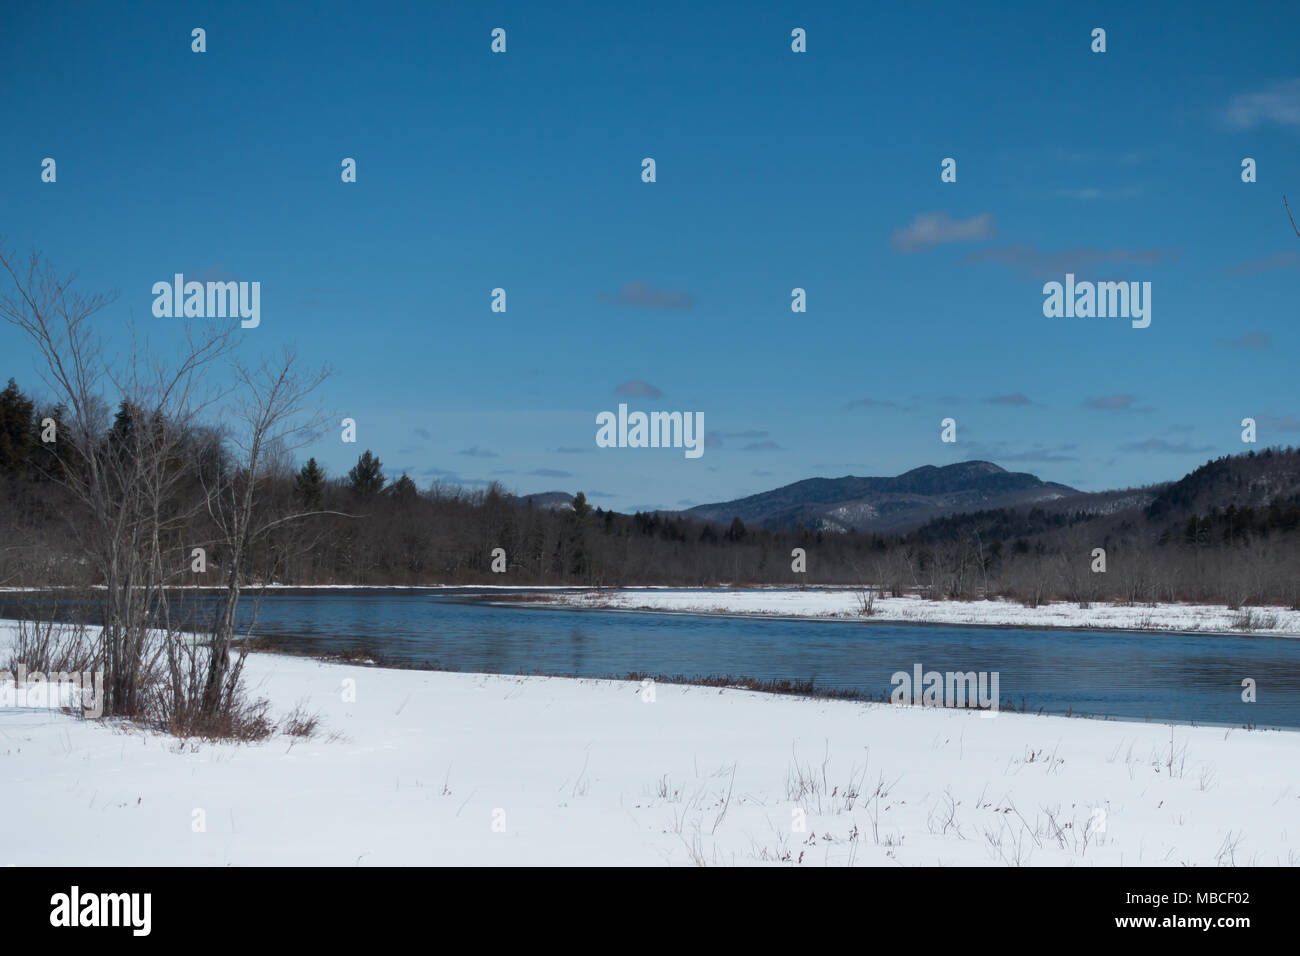 A winter view of the Sacandaga River in the Adirondack Mountains, NY USA - Stock Image